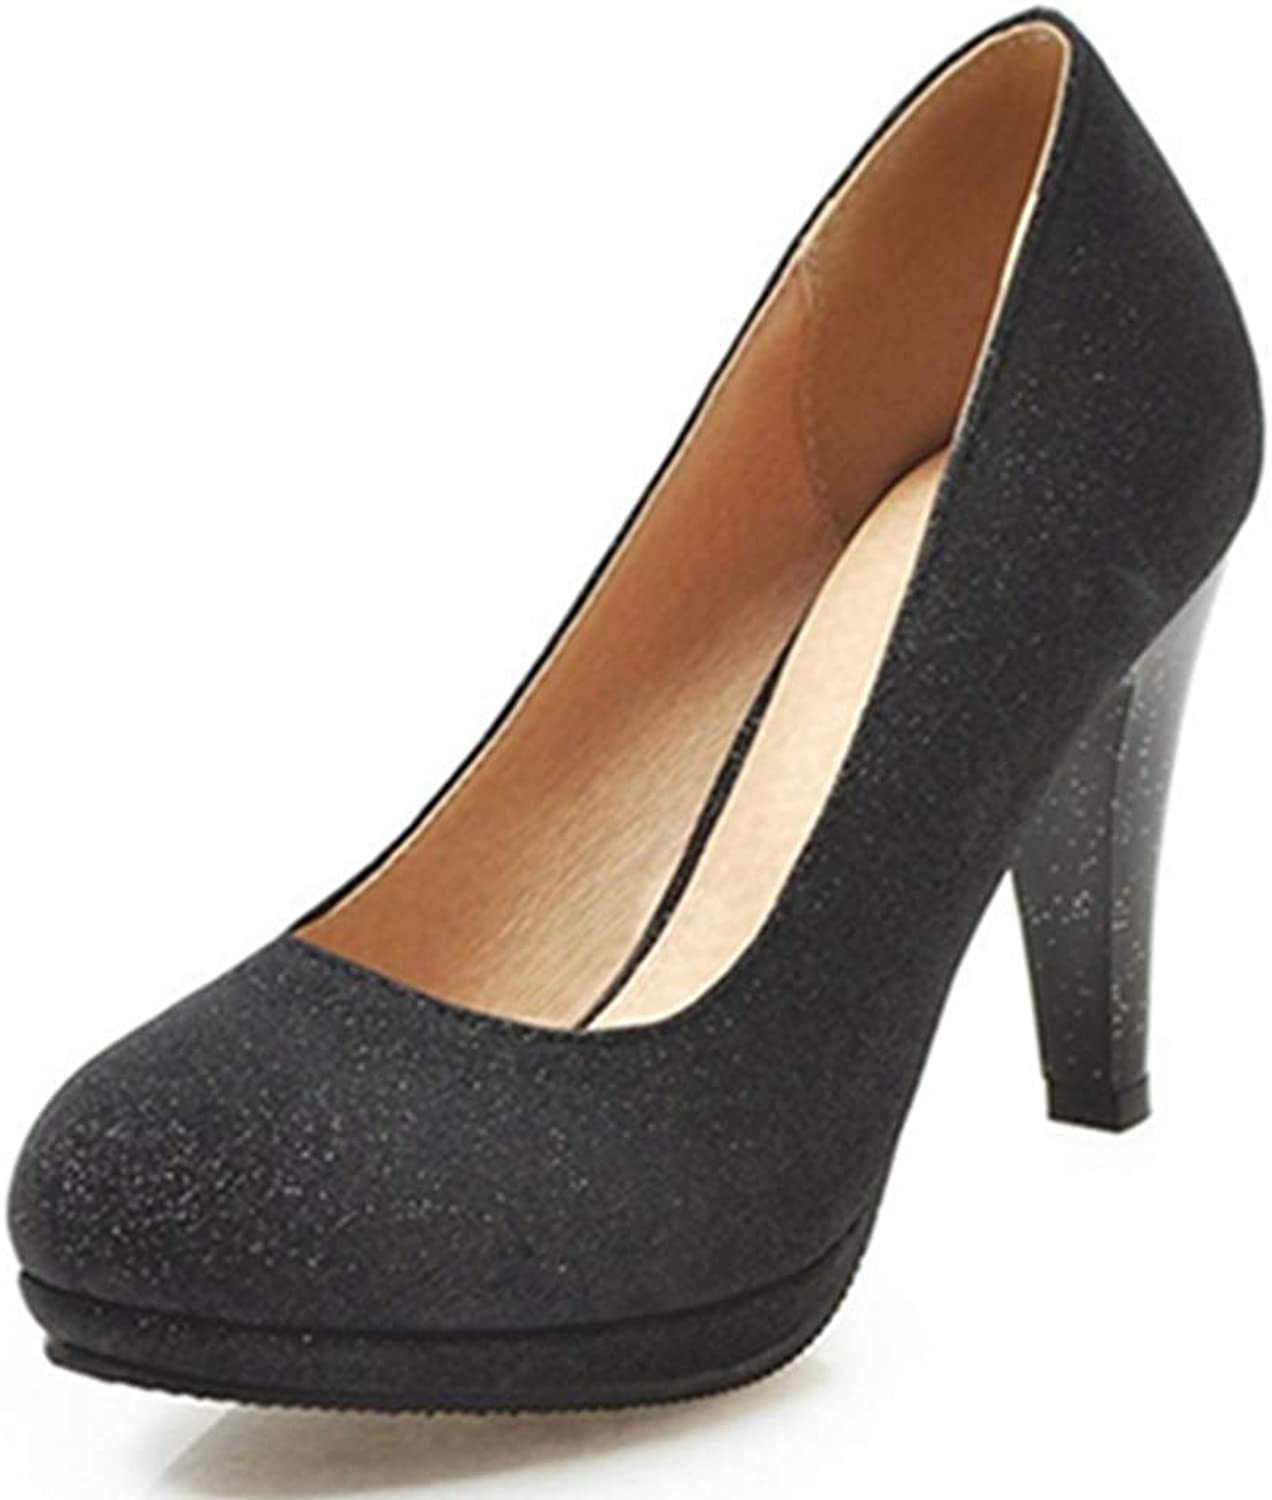 CUTEHEELS Women Dressy Pumps with High Heel and Thick Platform